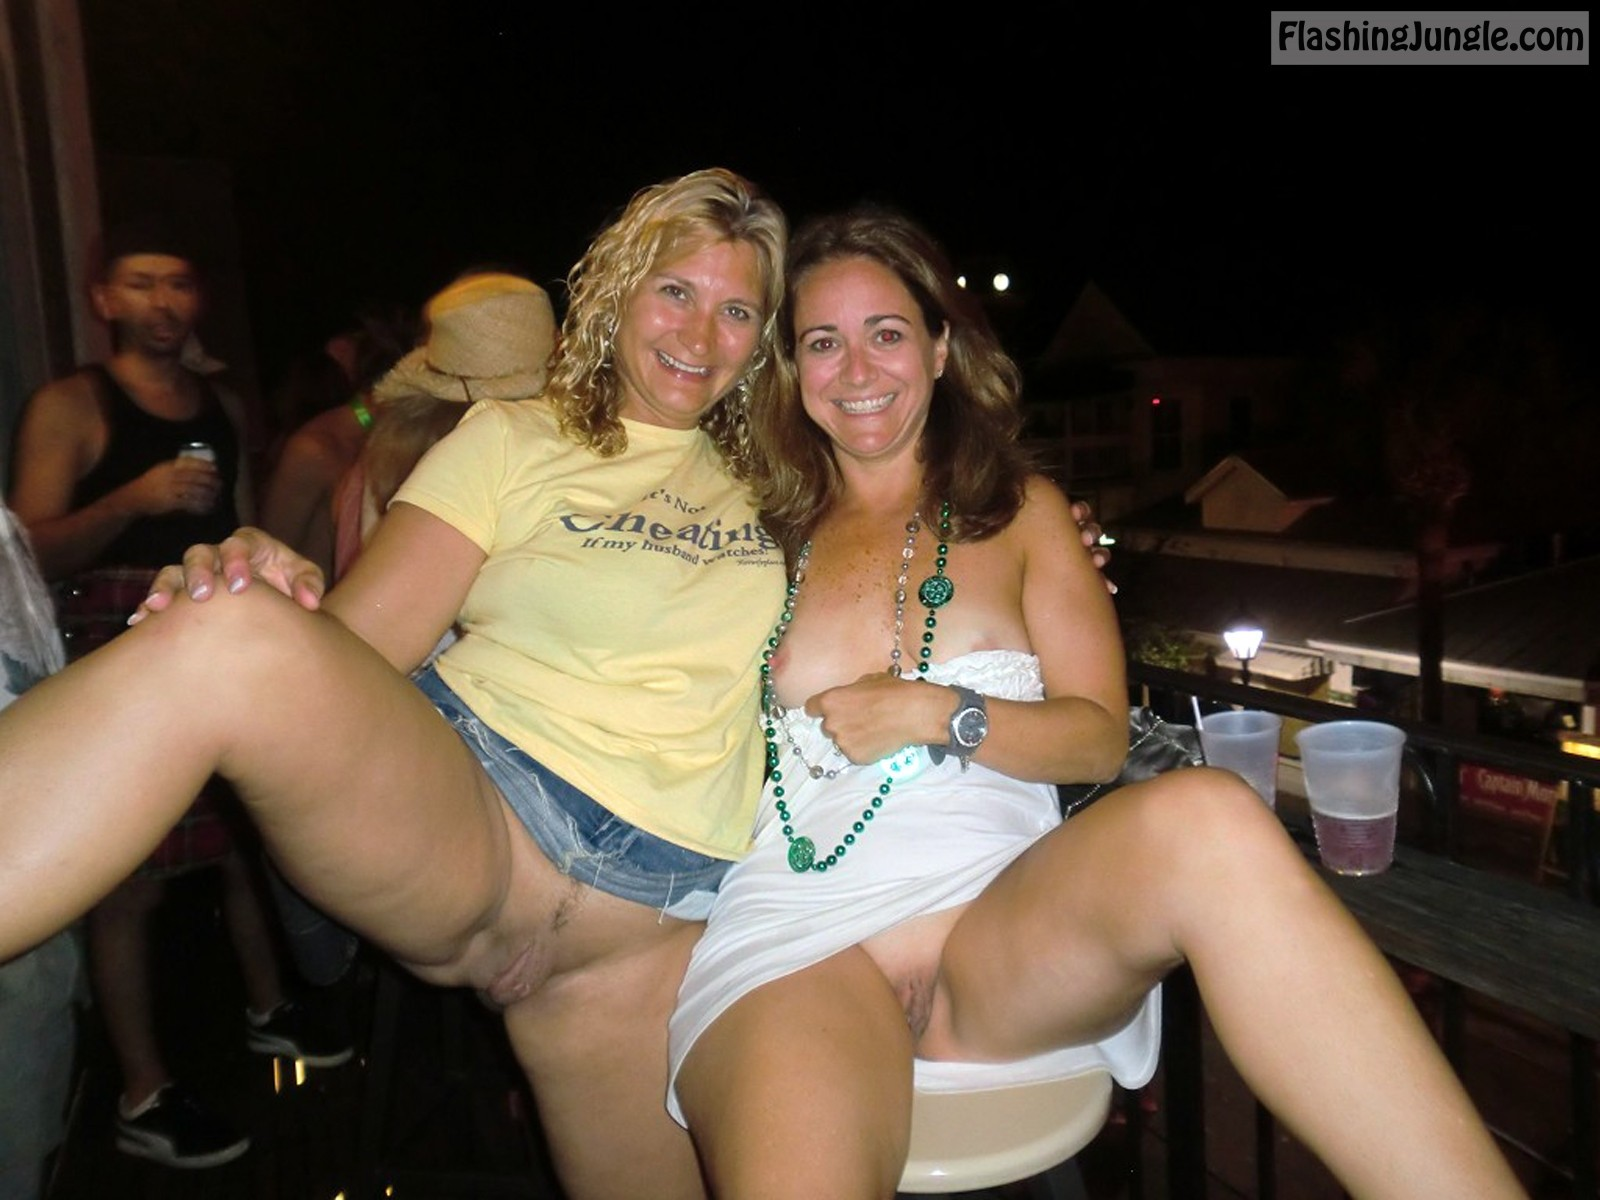 Drunk MILFs from Texas flash their coochies at the bar pussy flash public flashing no panties milf pics bitch